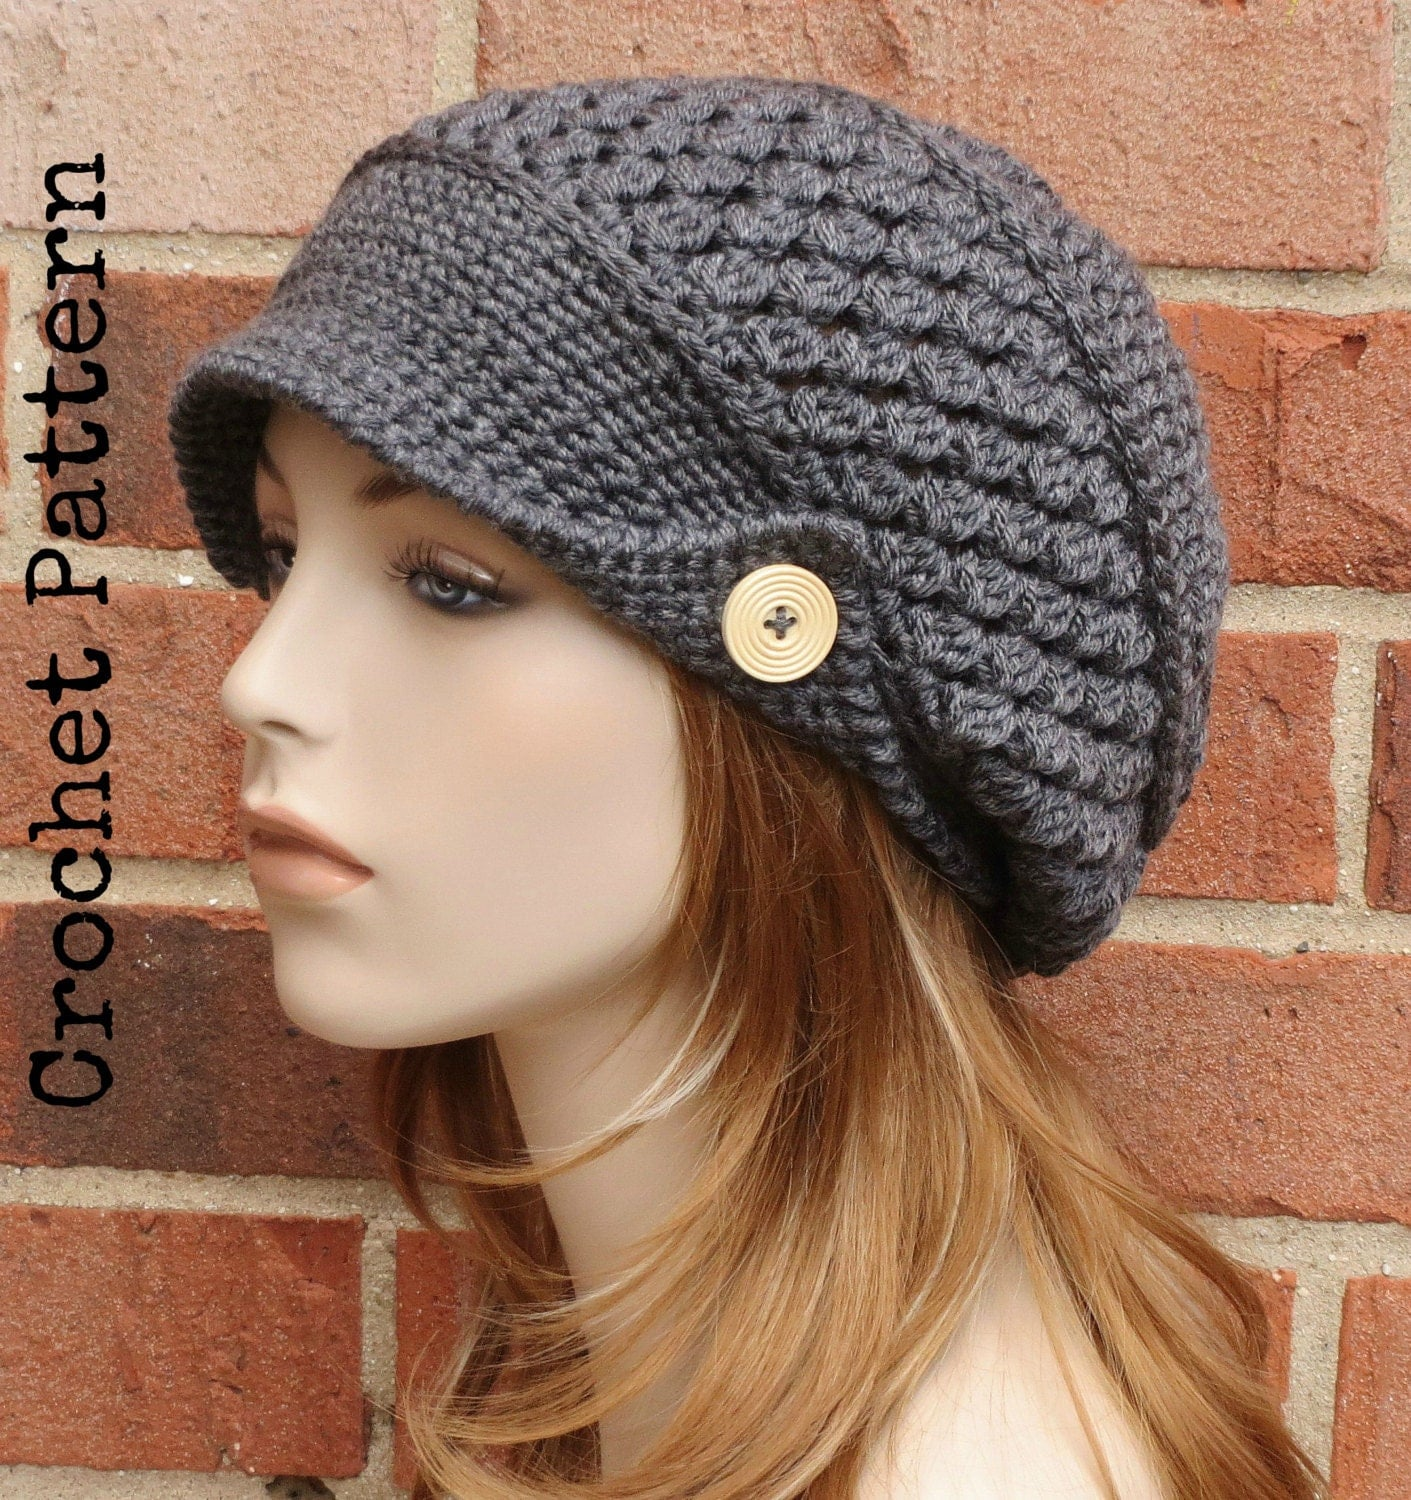 Crochet Pattern Mens Hat With Brim : CROCHET HAT PATTERN Instant Download Pdf Finley Newsboy